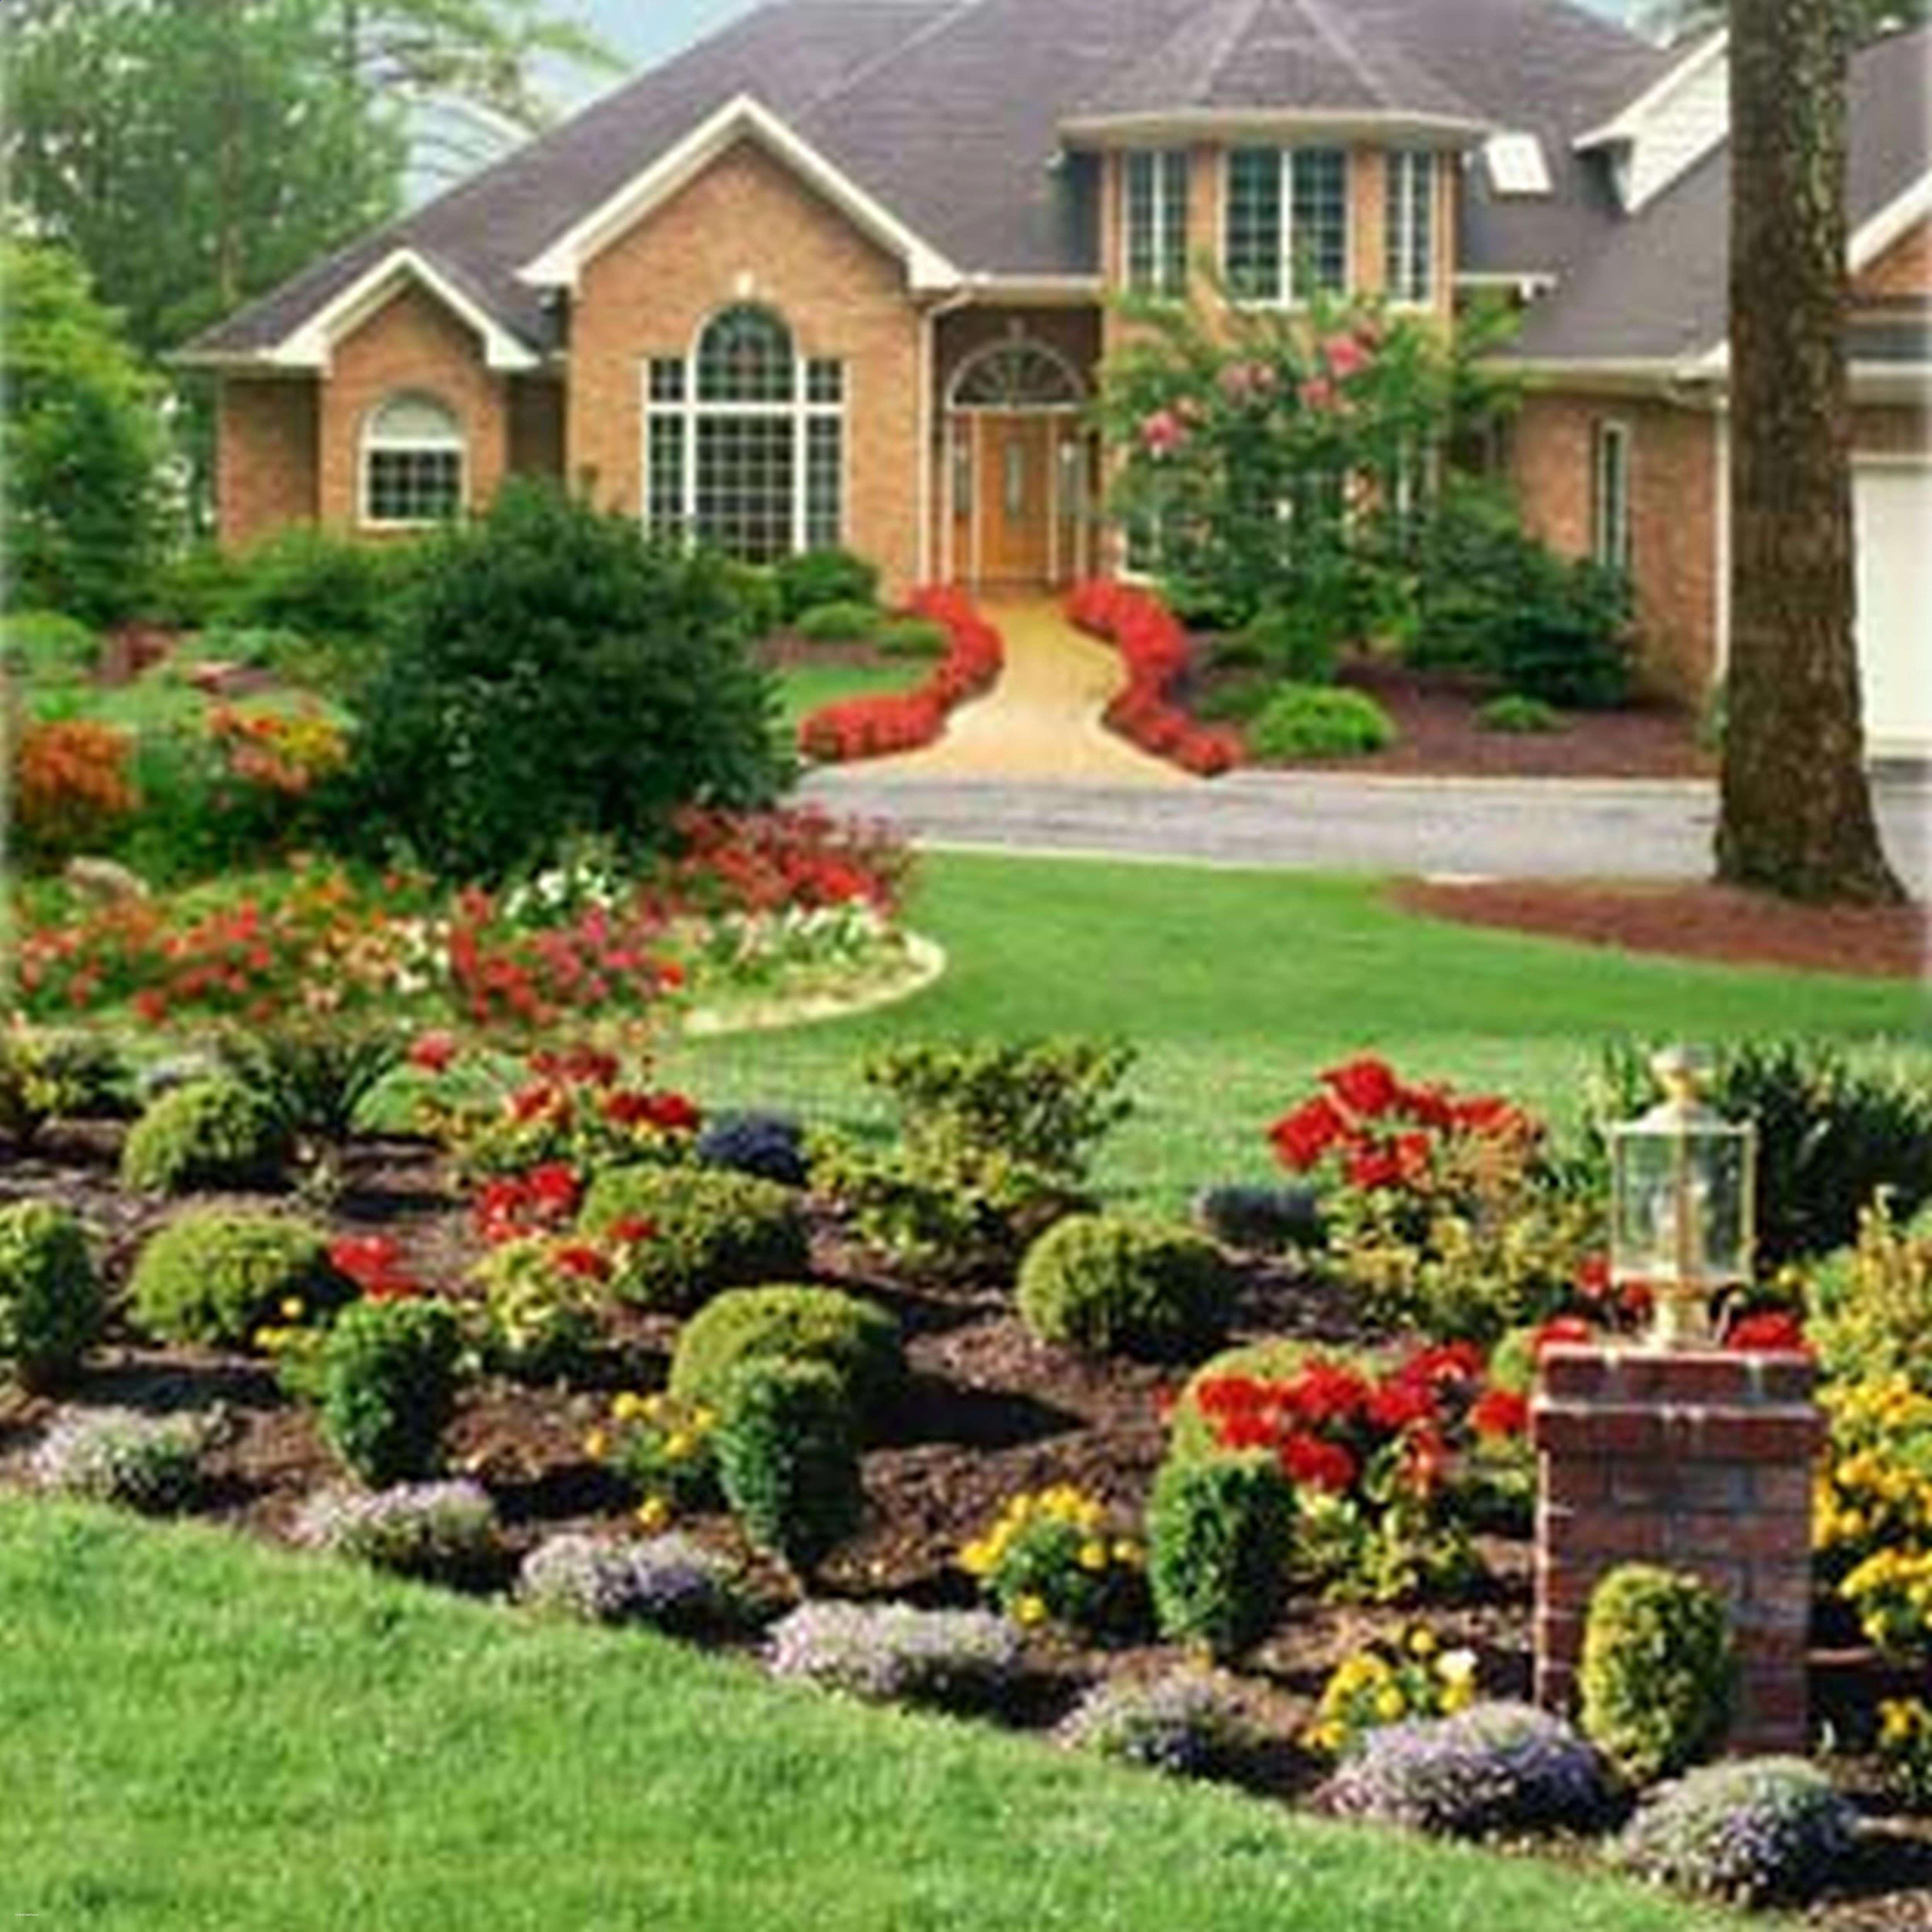 Landscape Design Ideas For Front Yards Small Free Garden Plan Gorgeous Patio Irela Front House Landscaping Front Yard Landscaping Design Front Yard Landscaping